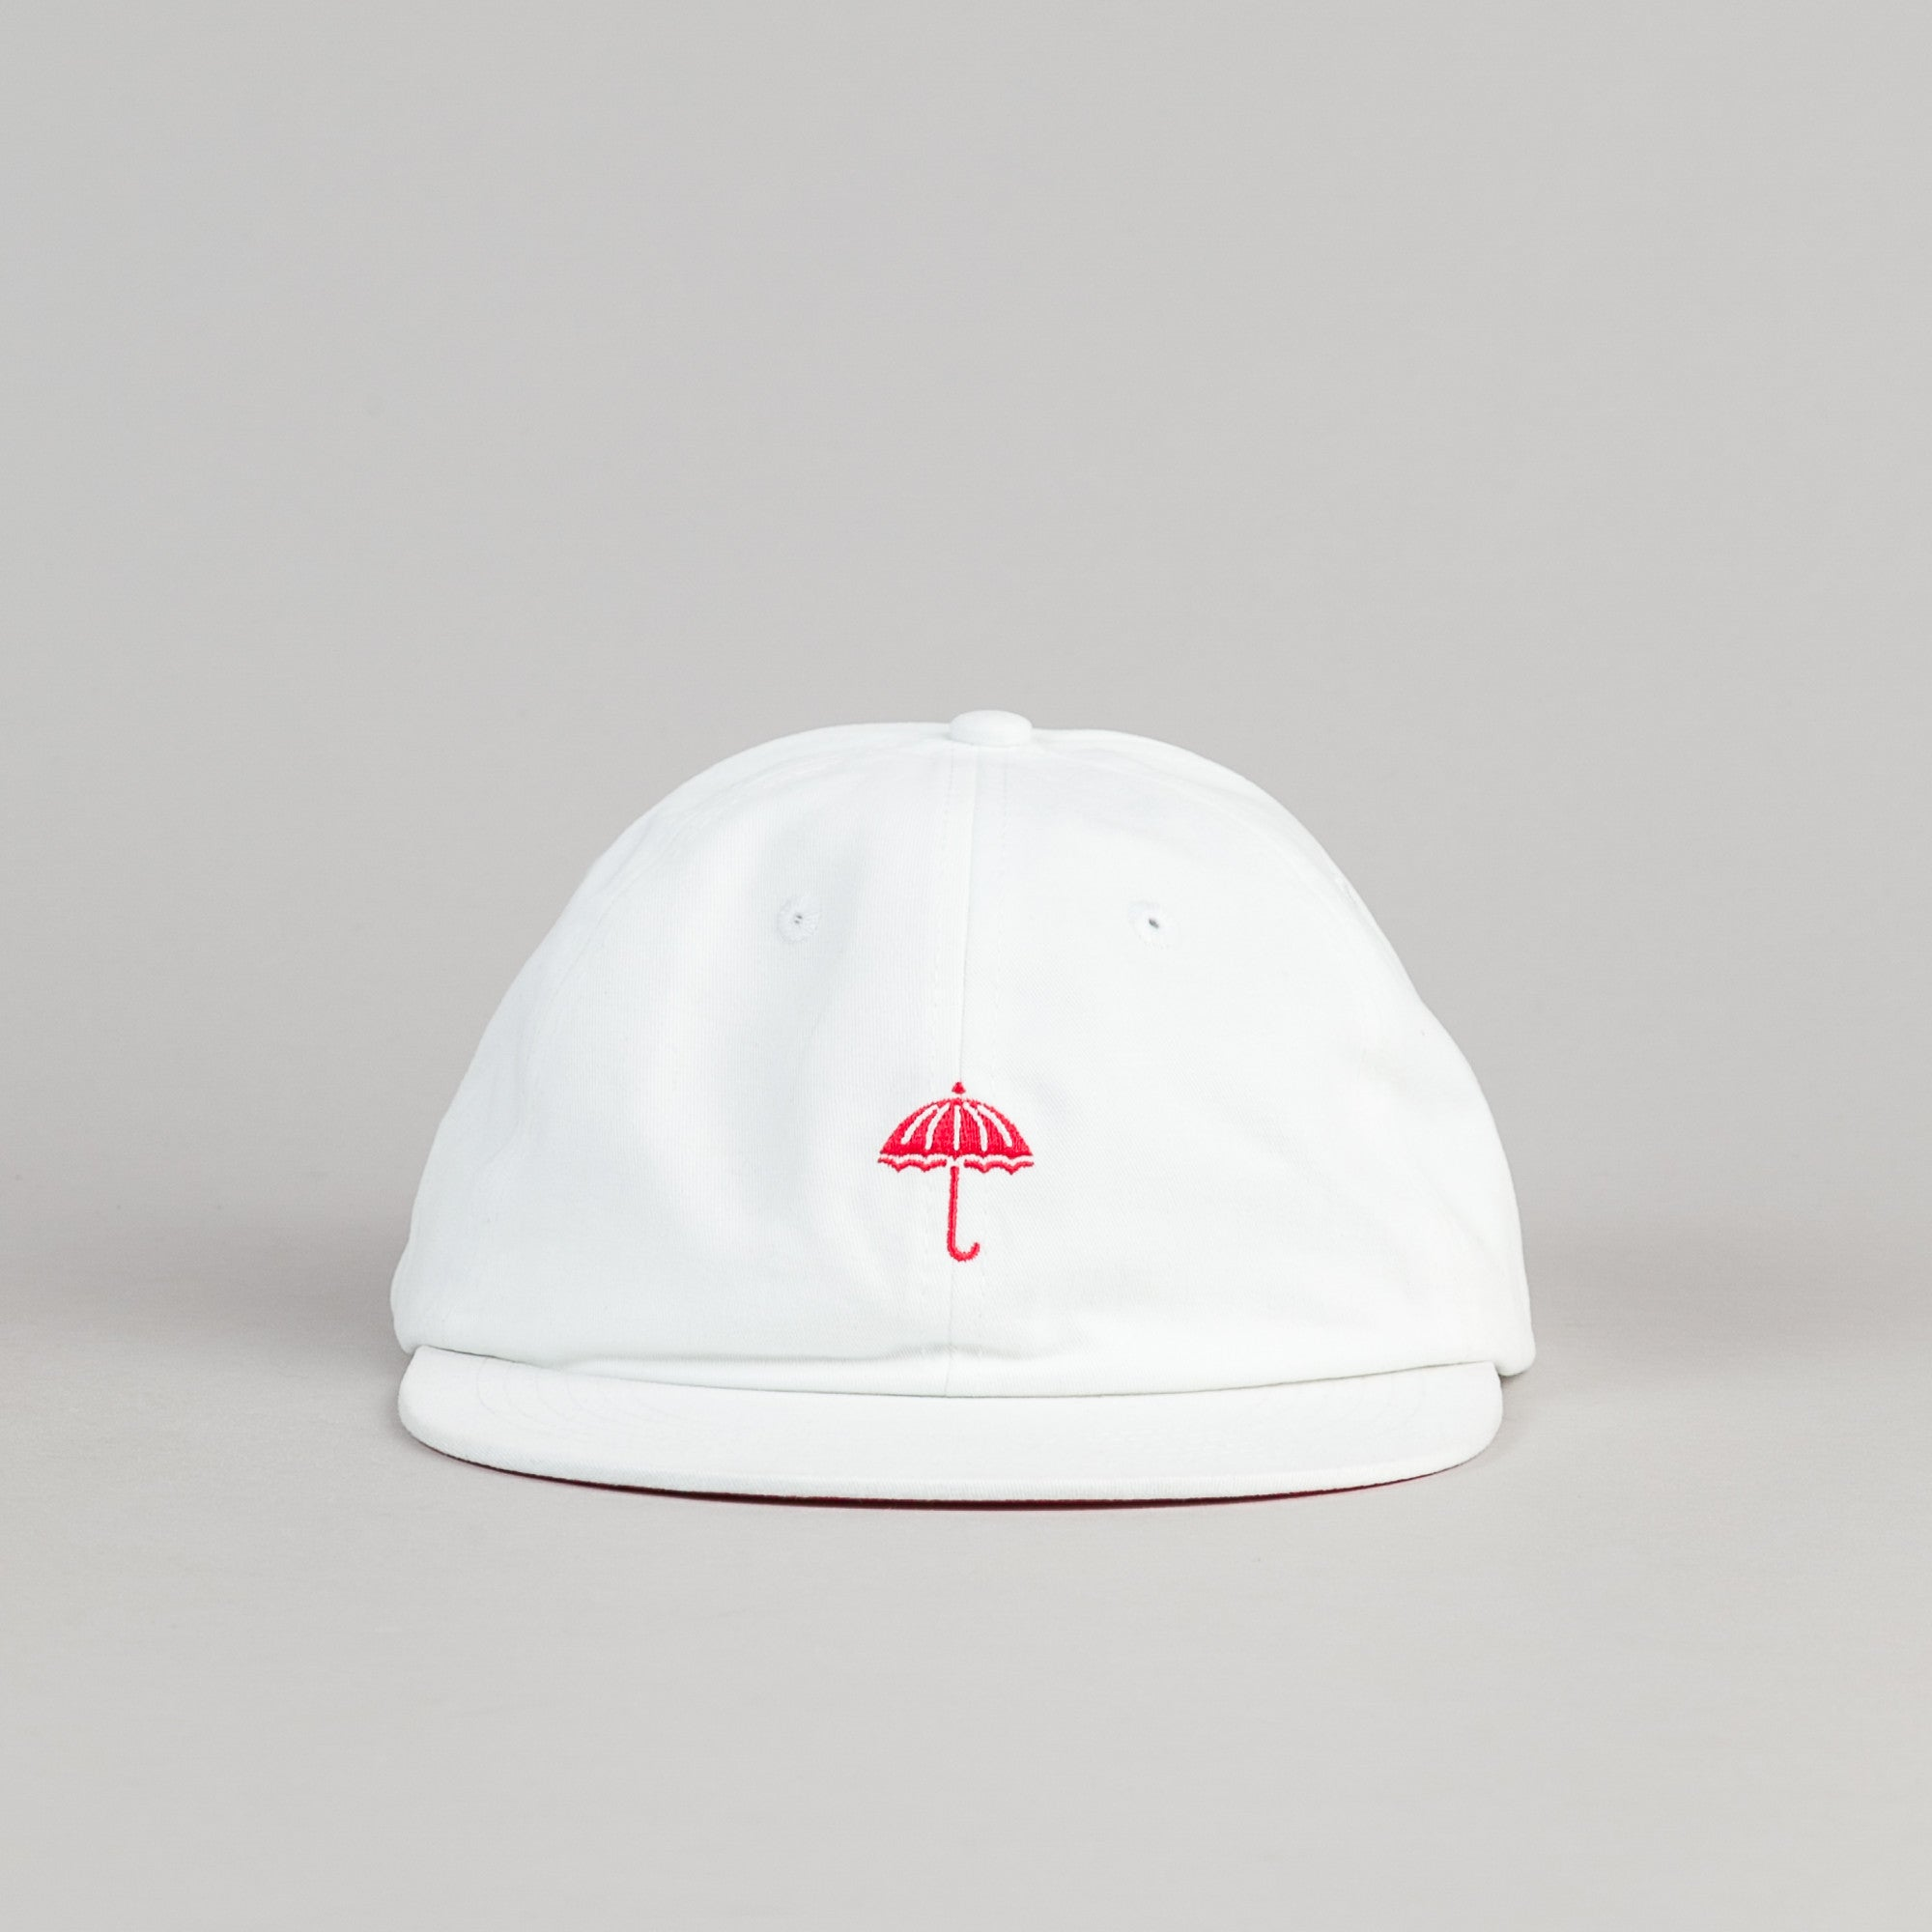 Helas Classic 6 Panel Cap - White / Red